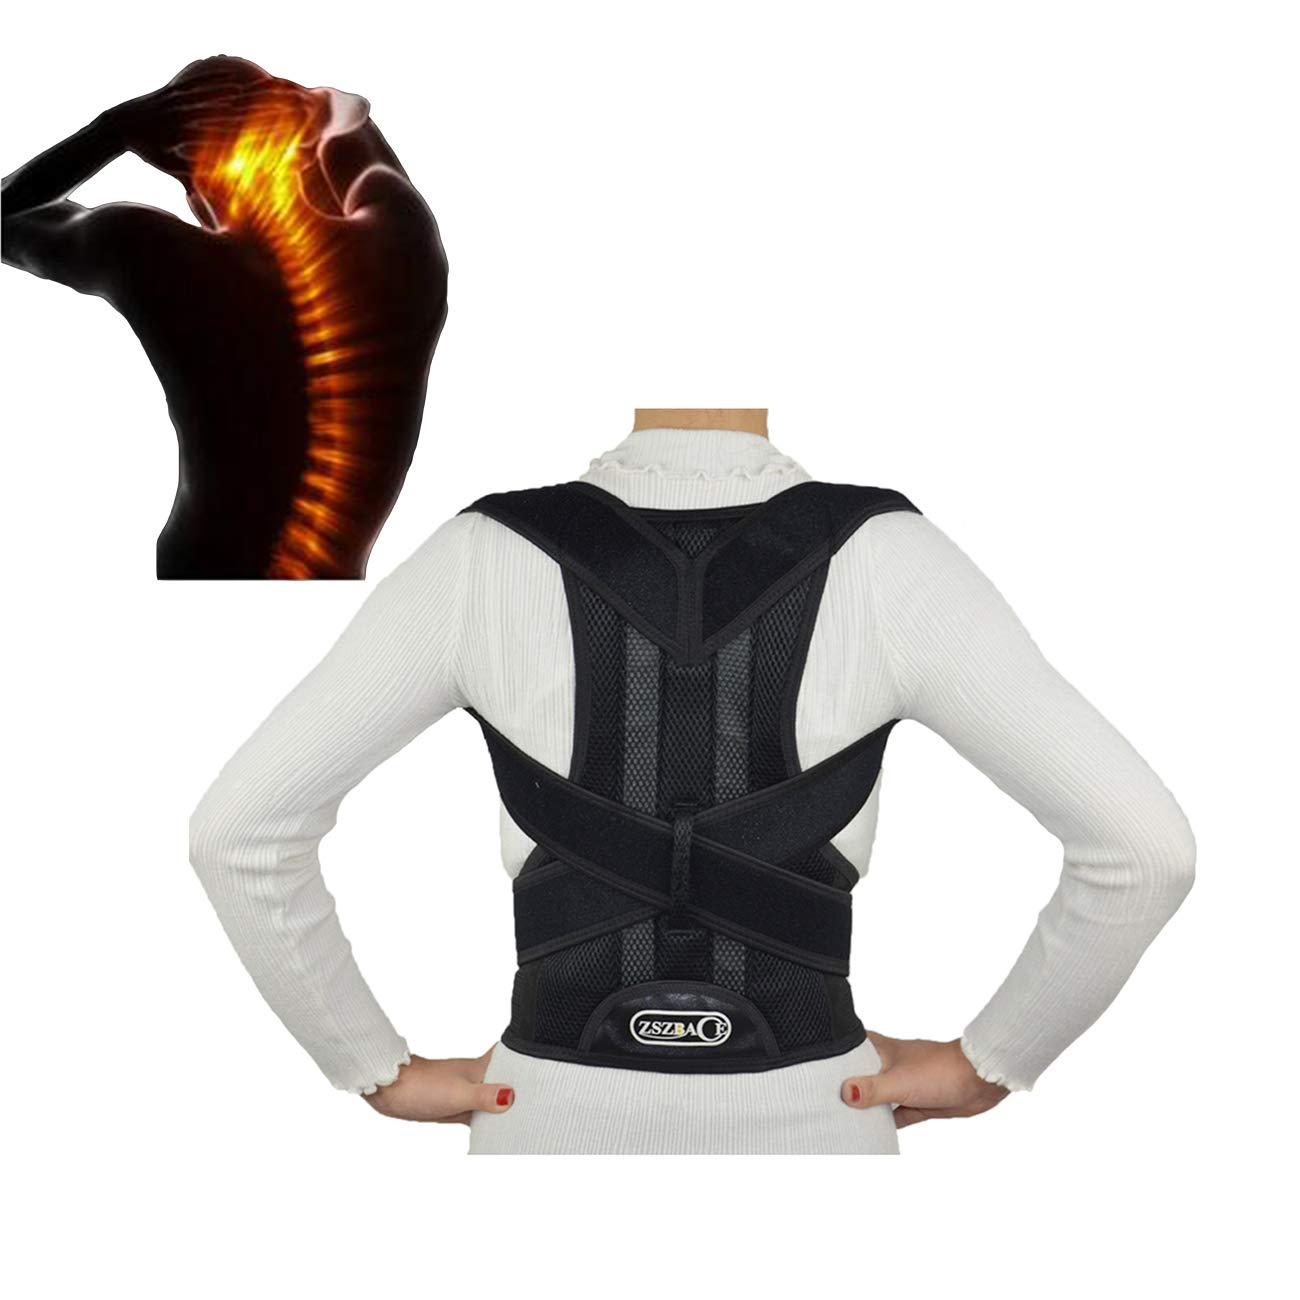 Treatment Anti-humpback Corrector,Shoulder Clavicle Supports,Corrector Back Brace,Back Support For Lower and Upper Back Pain. (Large)